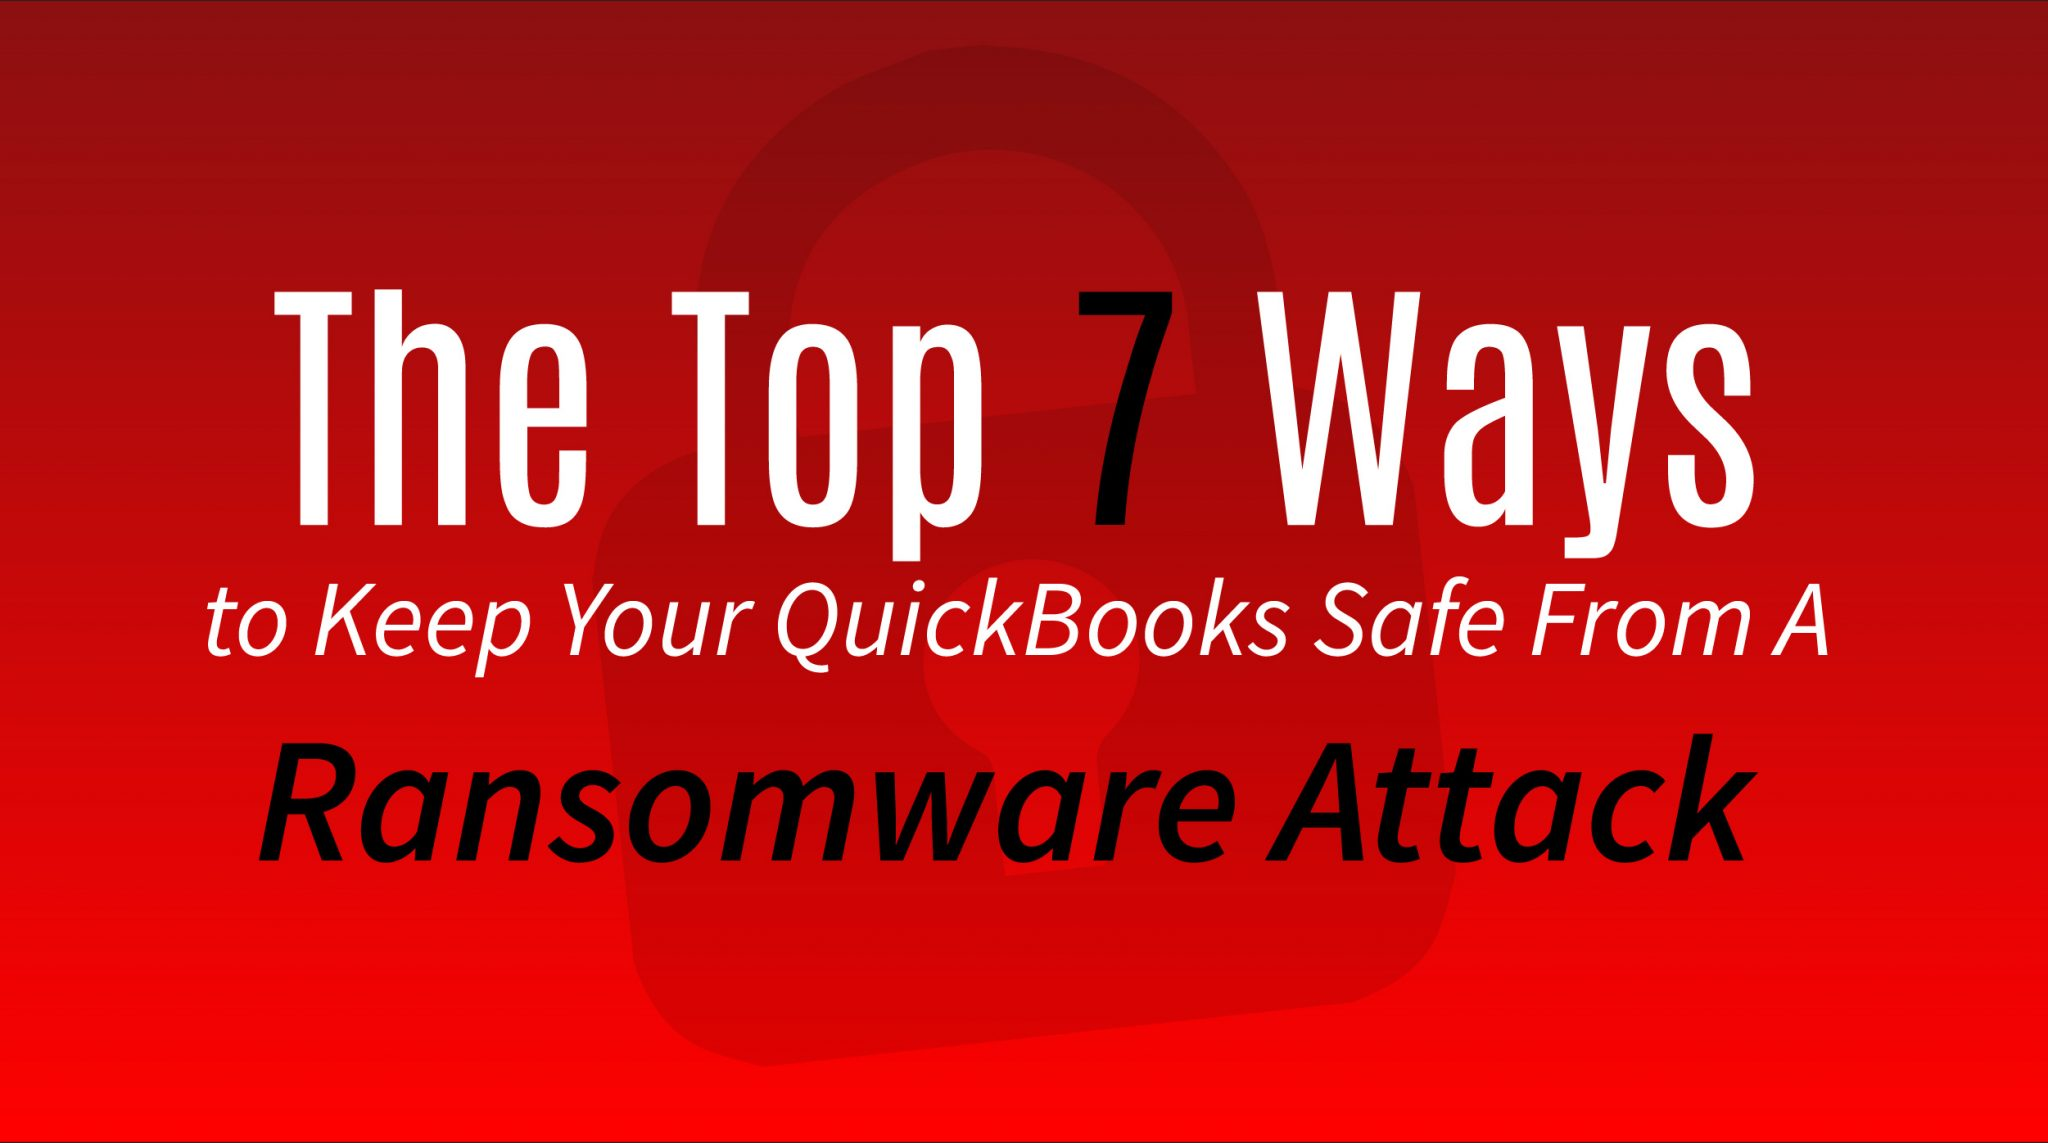 Keep QuickBooks Safe From Ransomware